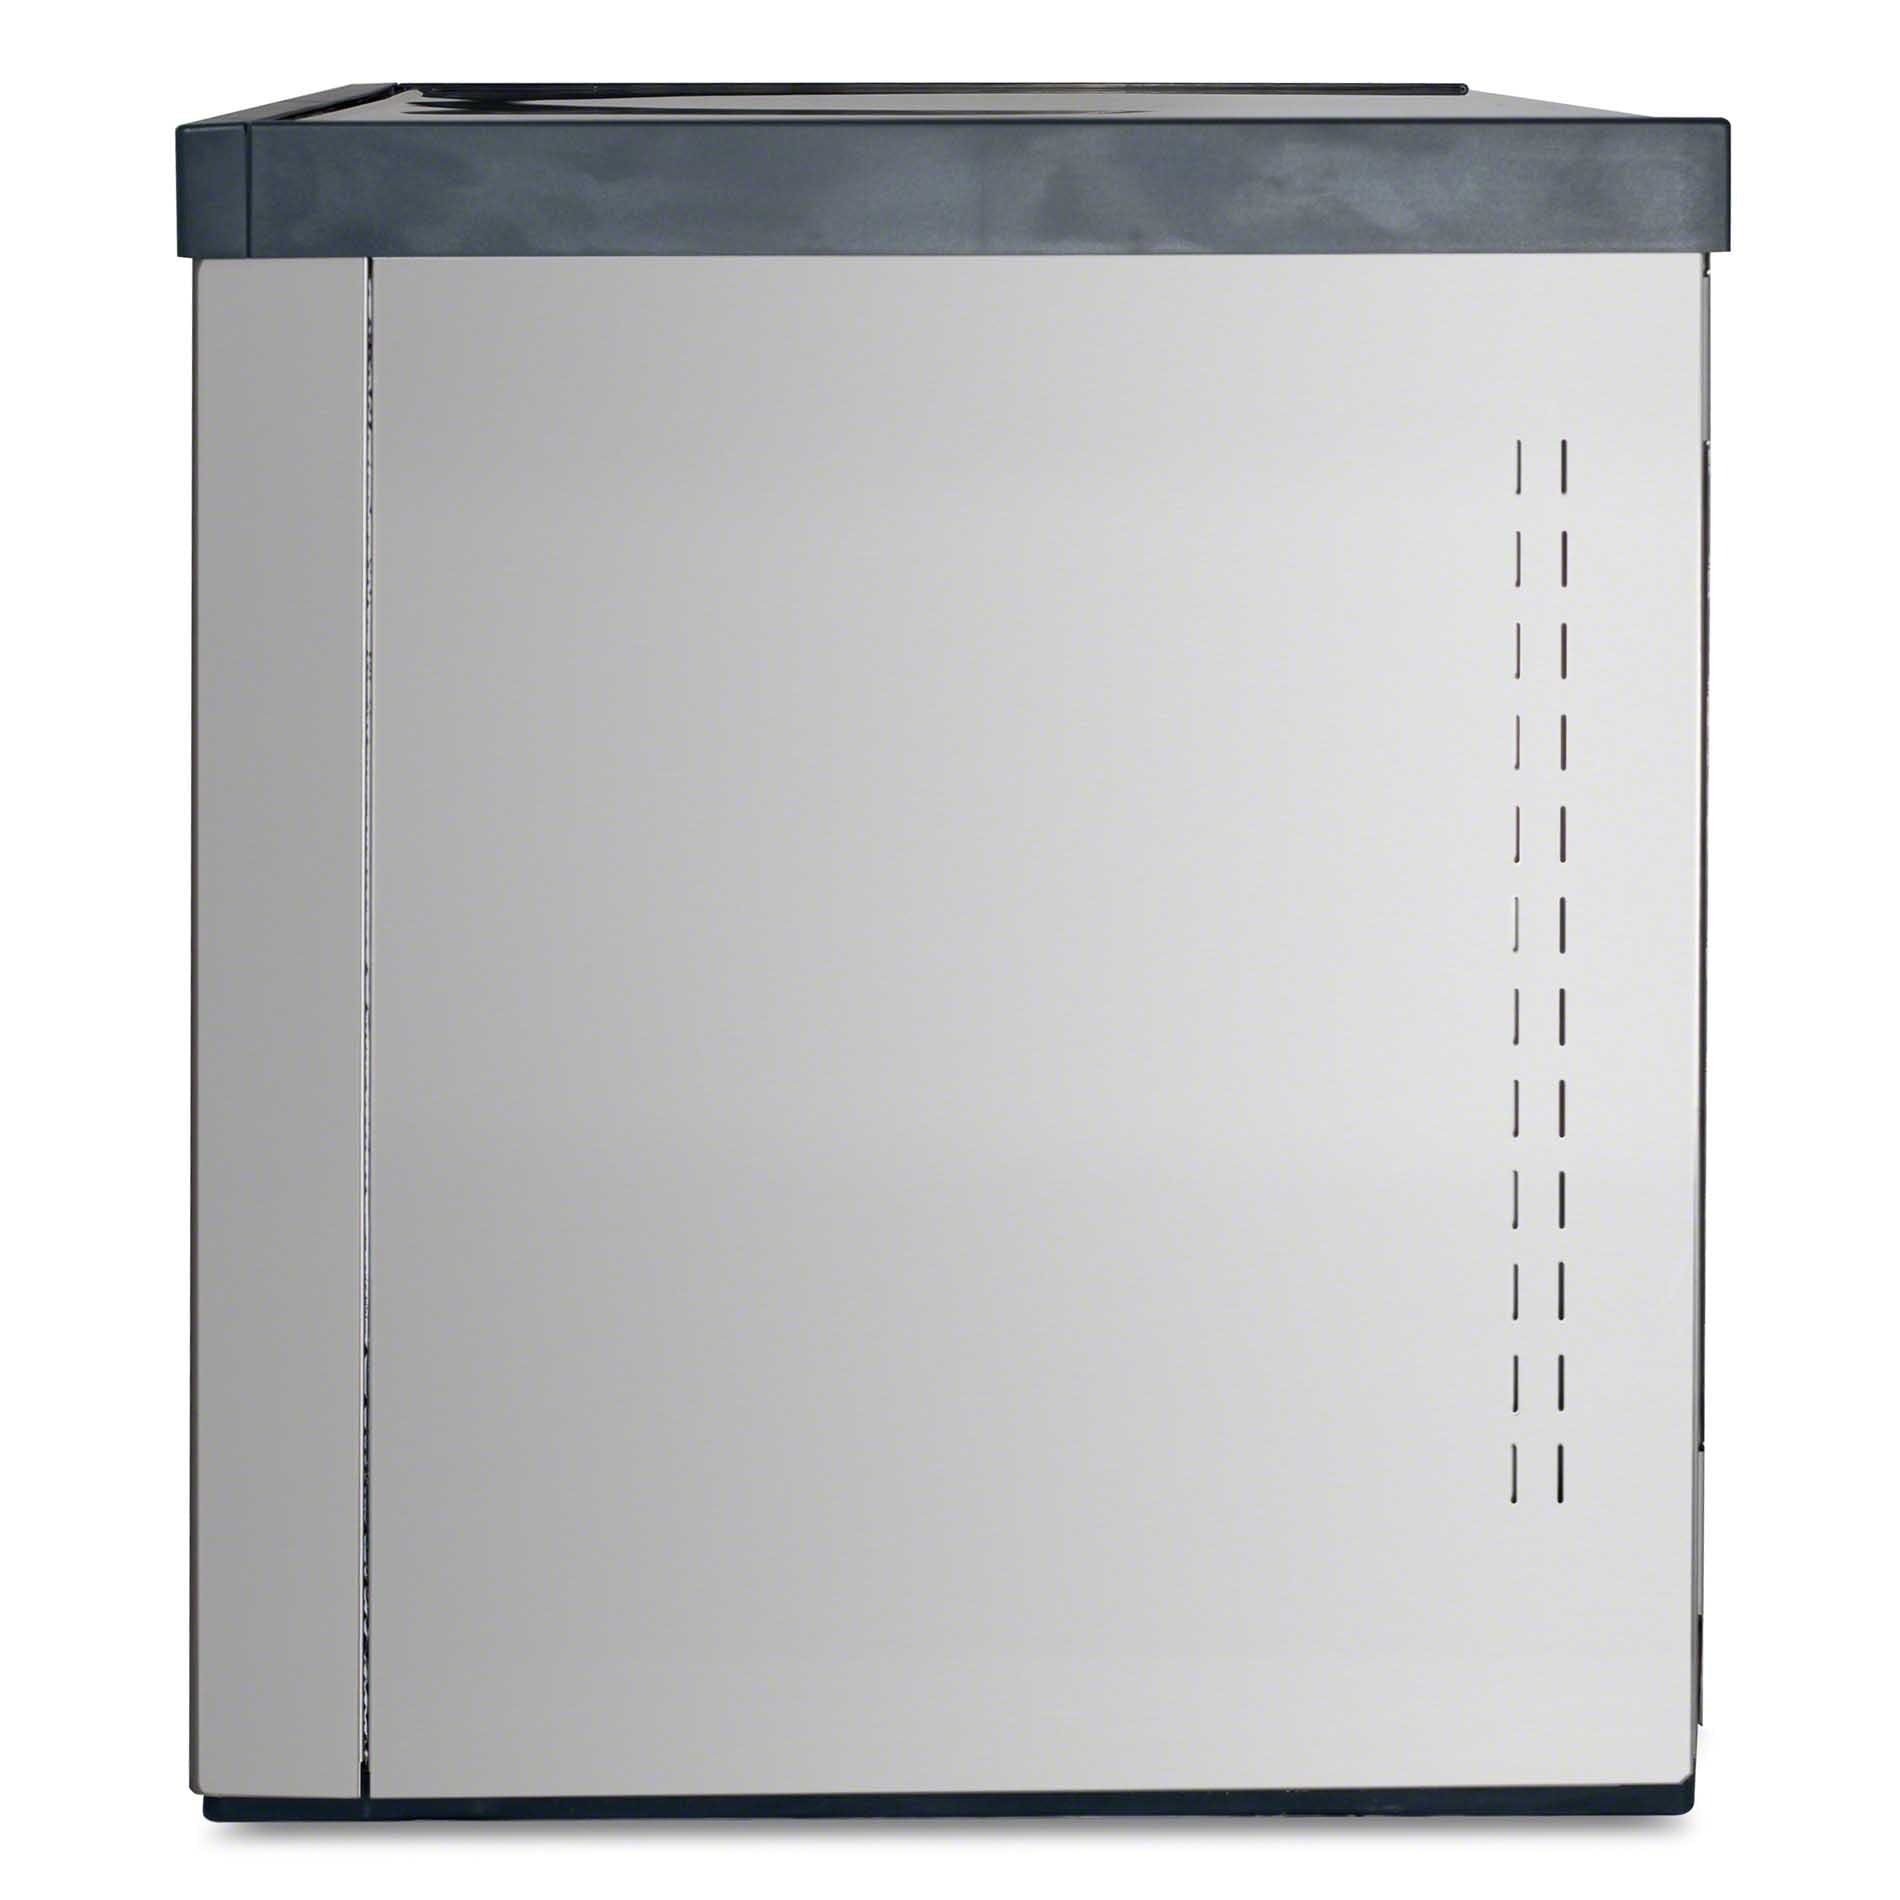 Scotsman - C1030SA-3A 1077 lb Half Size Cube Ice Machine - Prodigy Series Ice machine sold by Food Service Warehouse